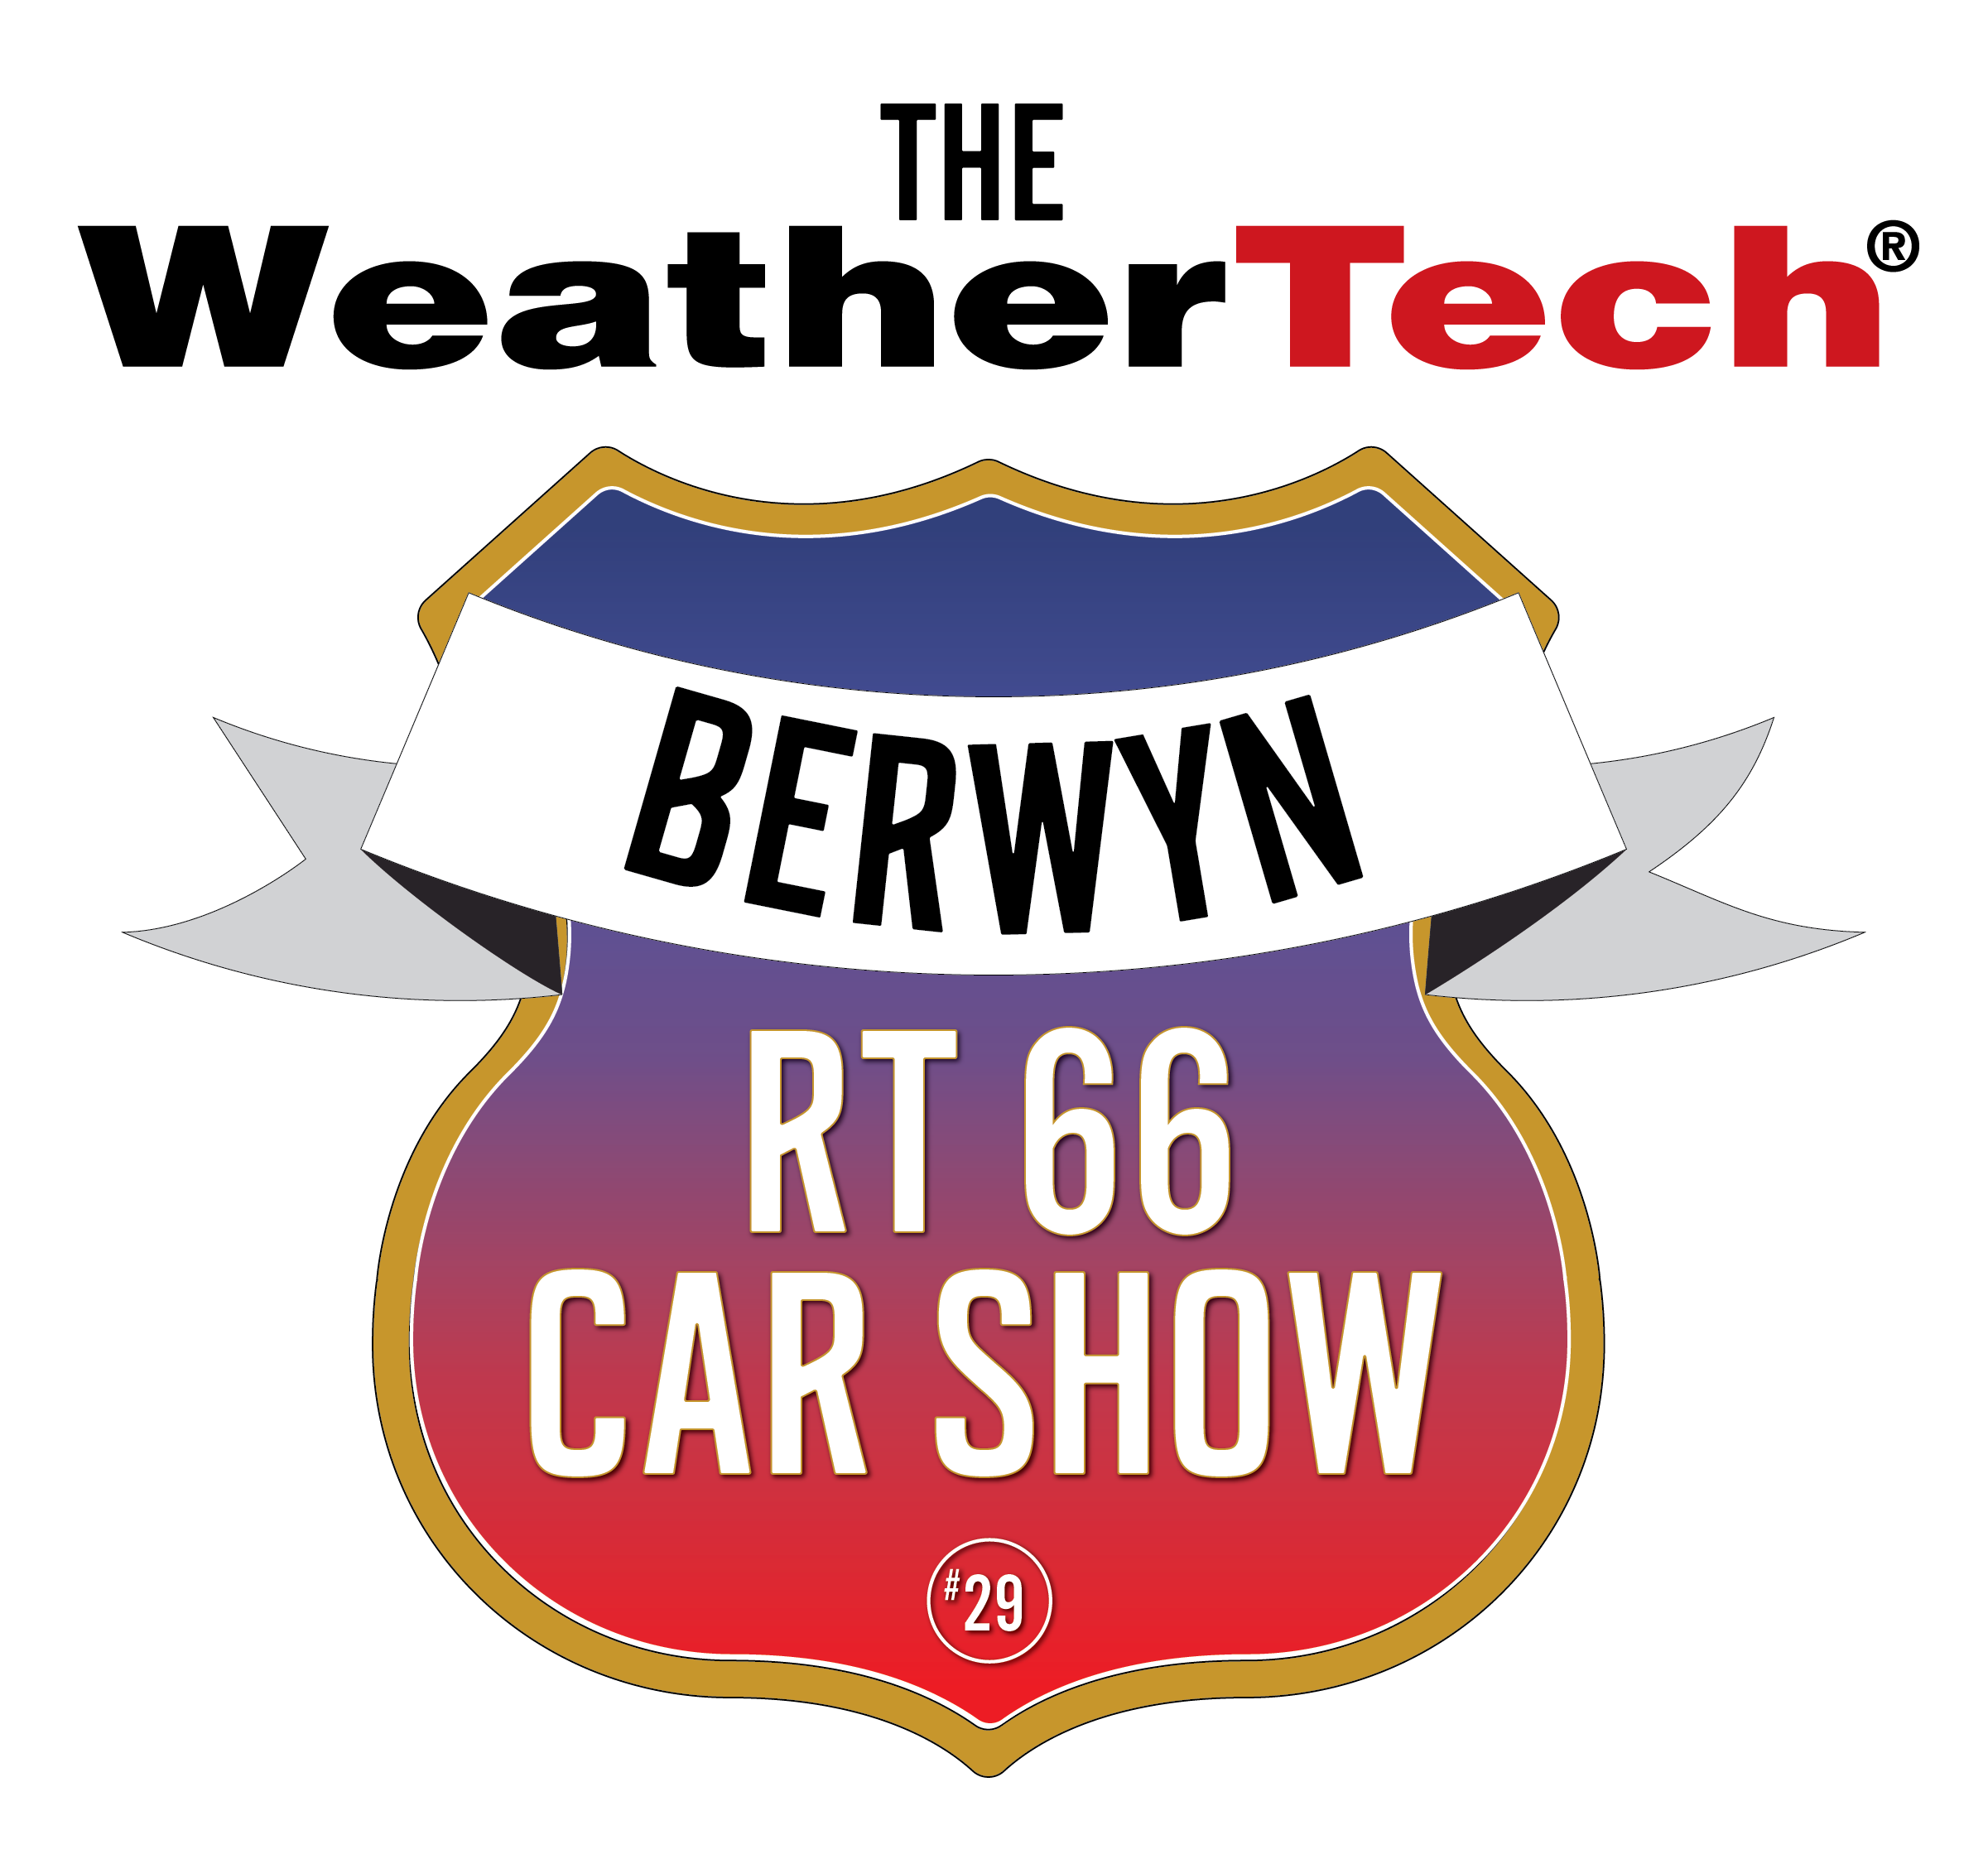 The WeatherTech Berwyn Rt66 Car Show